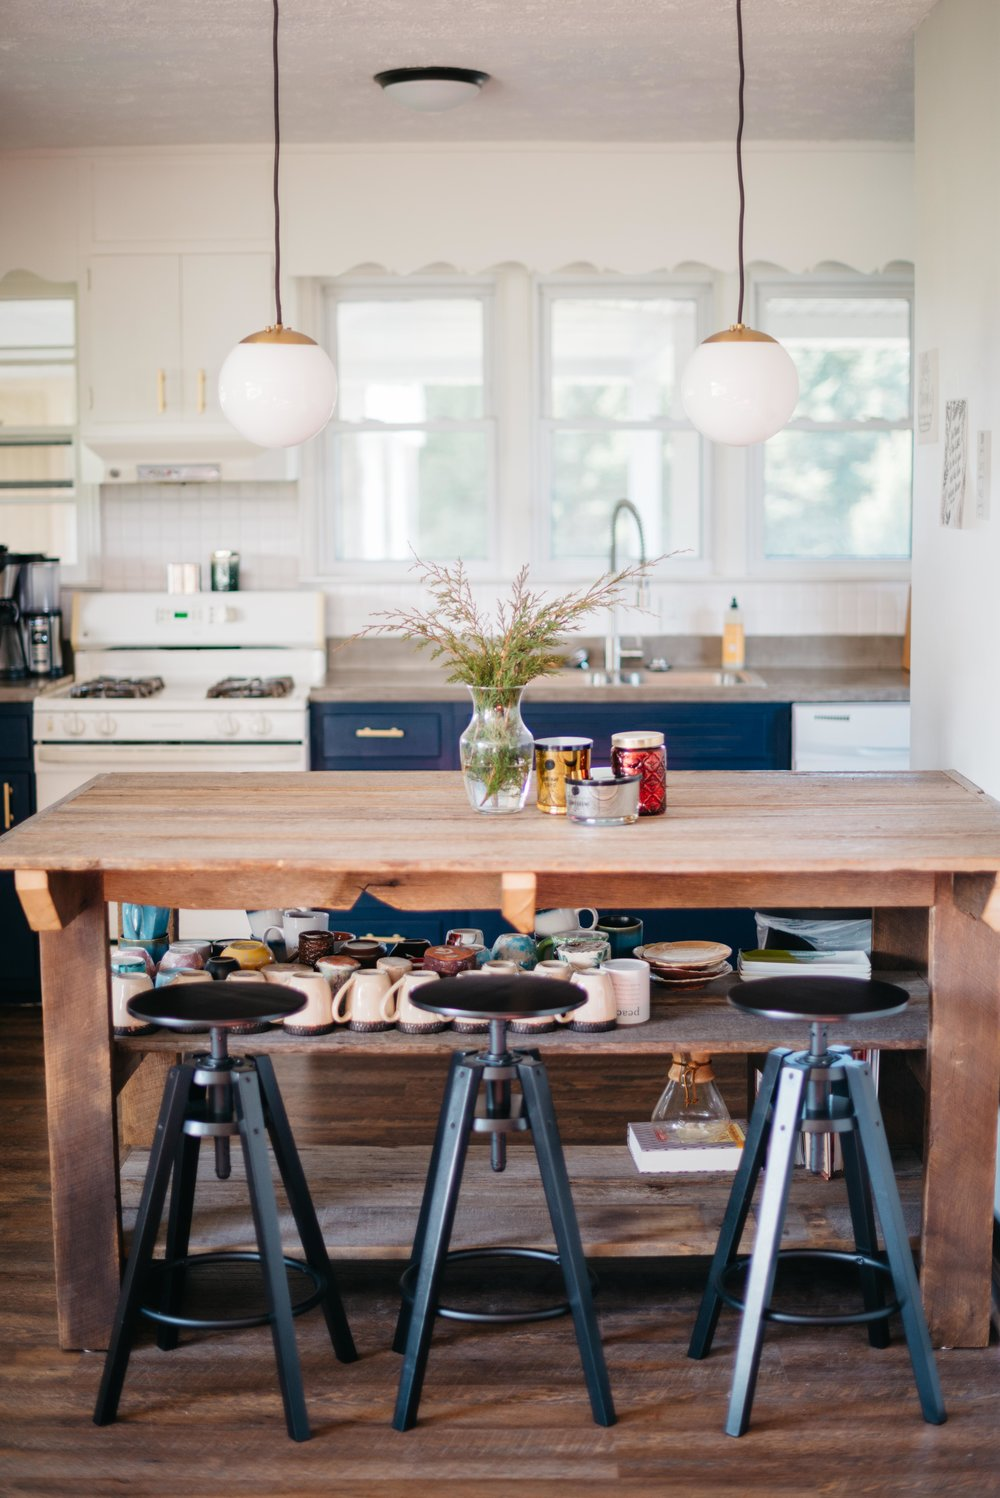 Blue and white mid-century modern farmhouse kitchen remodel